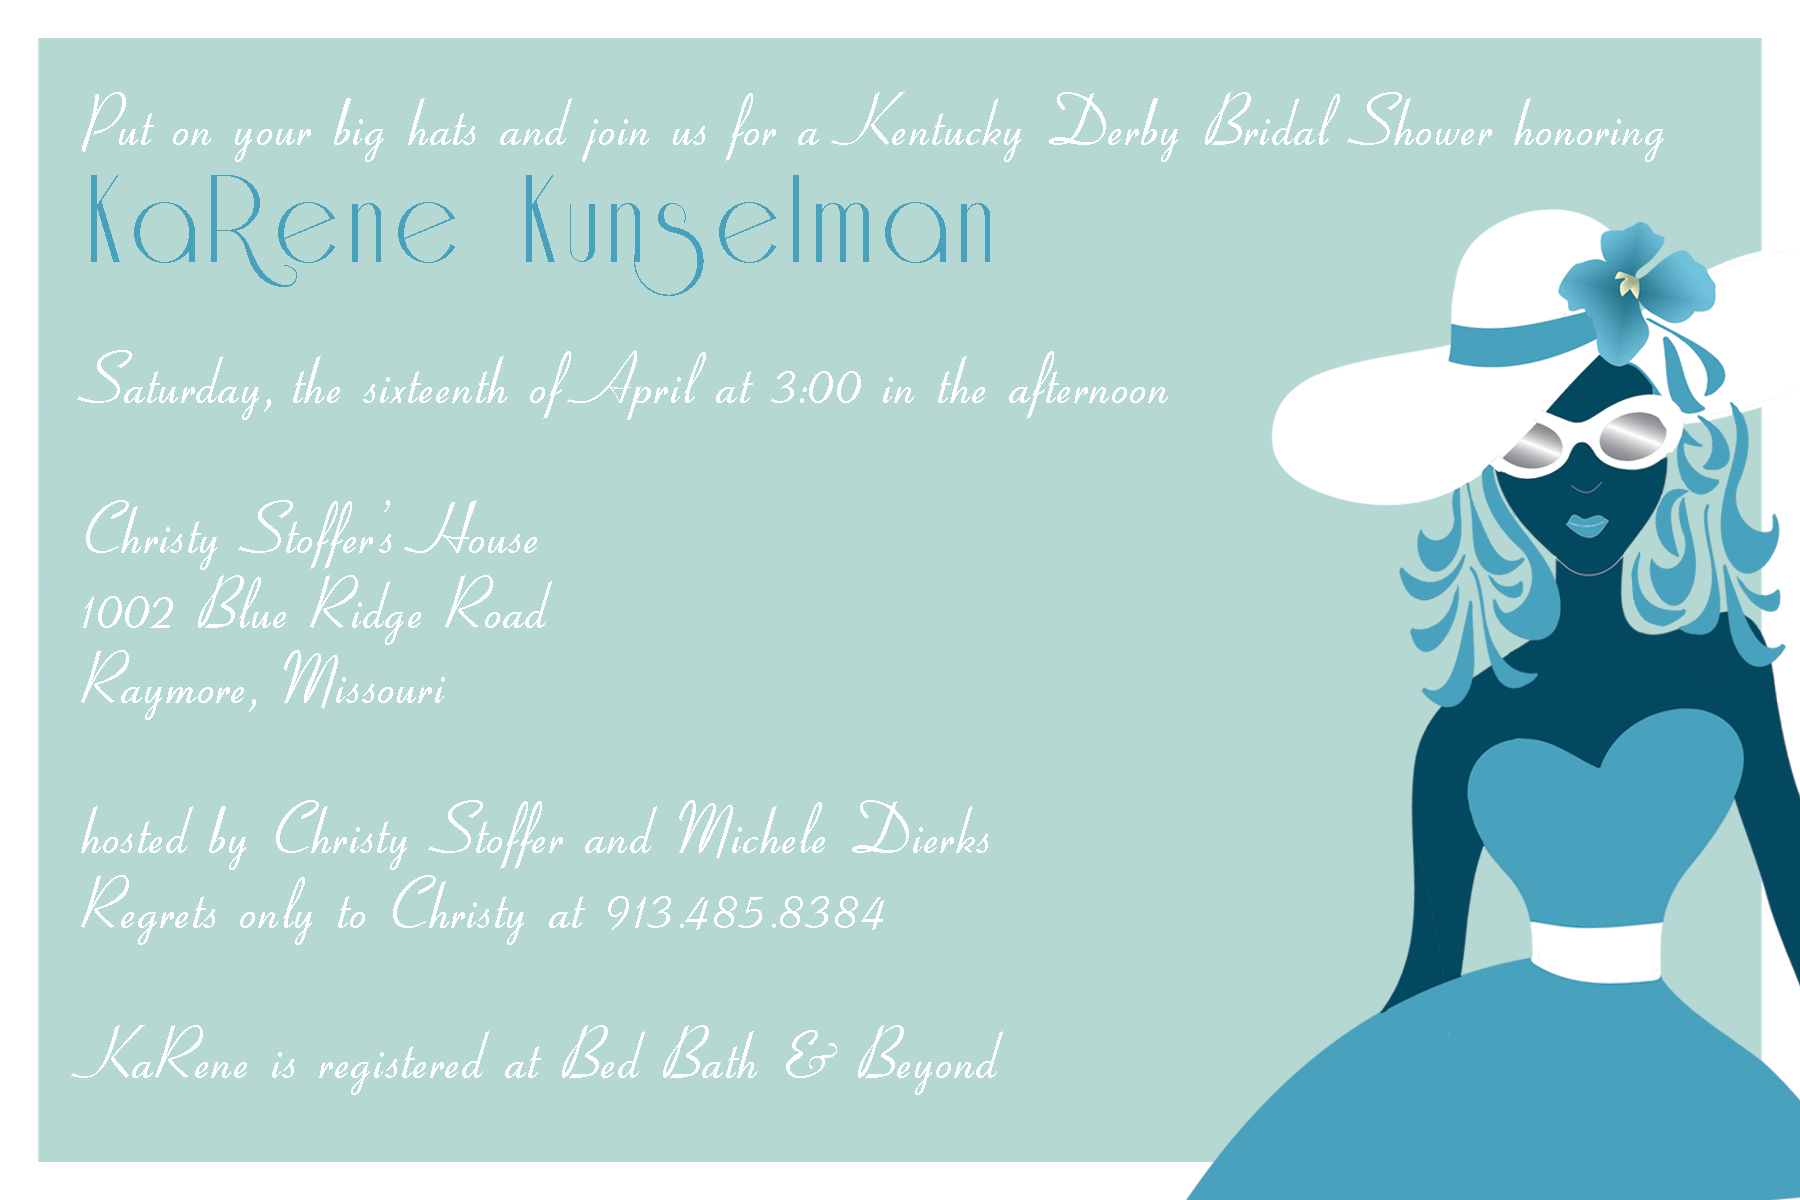 Kentucky Derby Bridal Shower Invitations correctly perfect ideas for your invitation layout